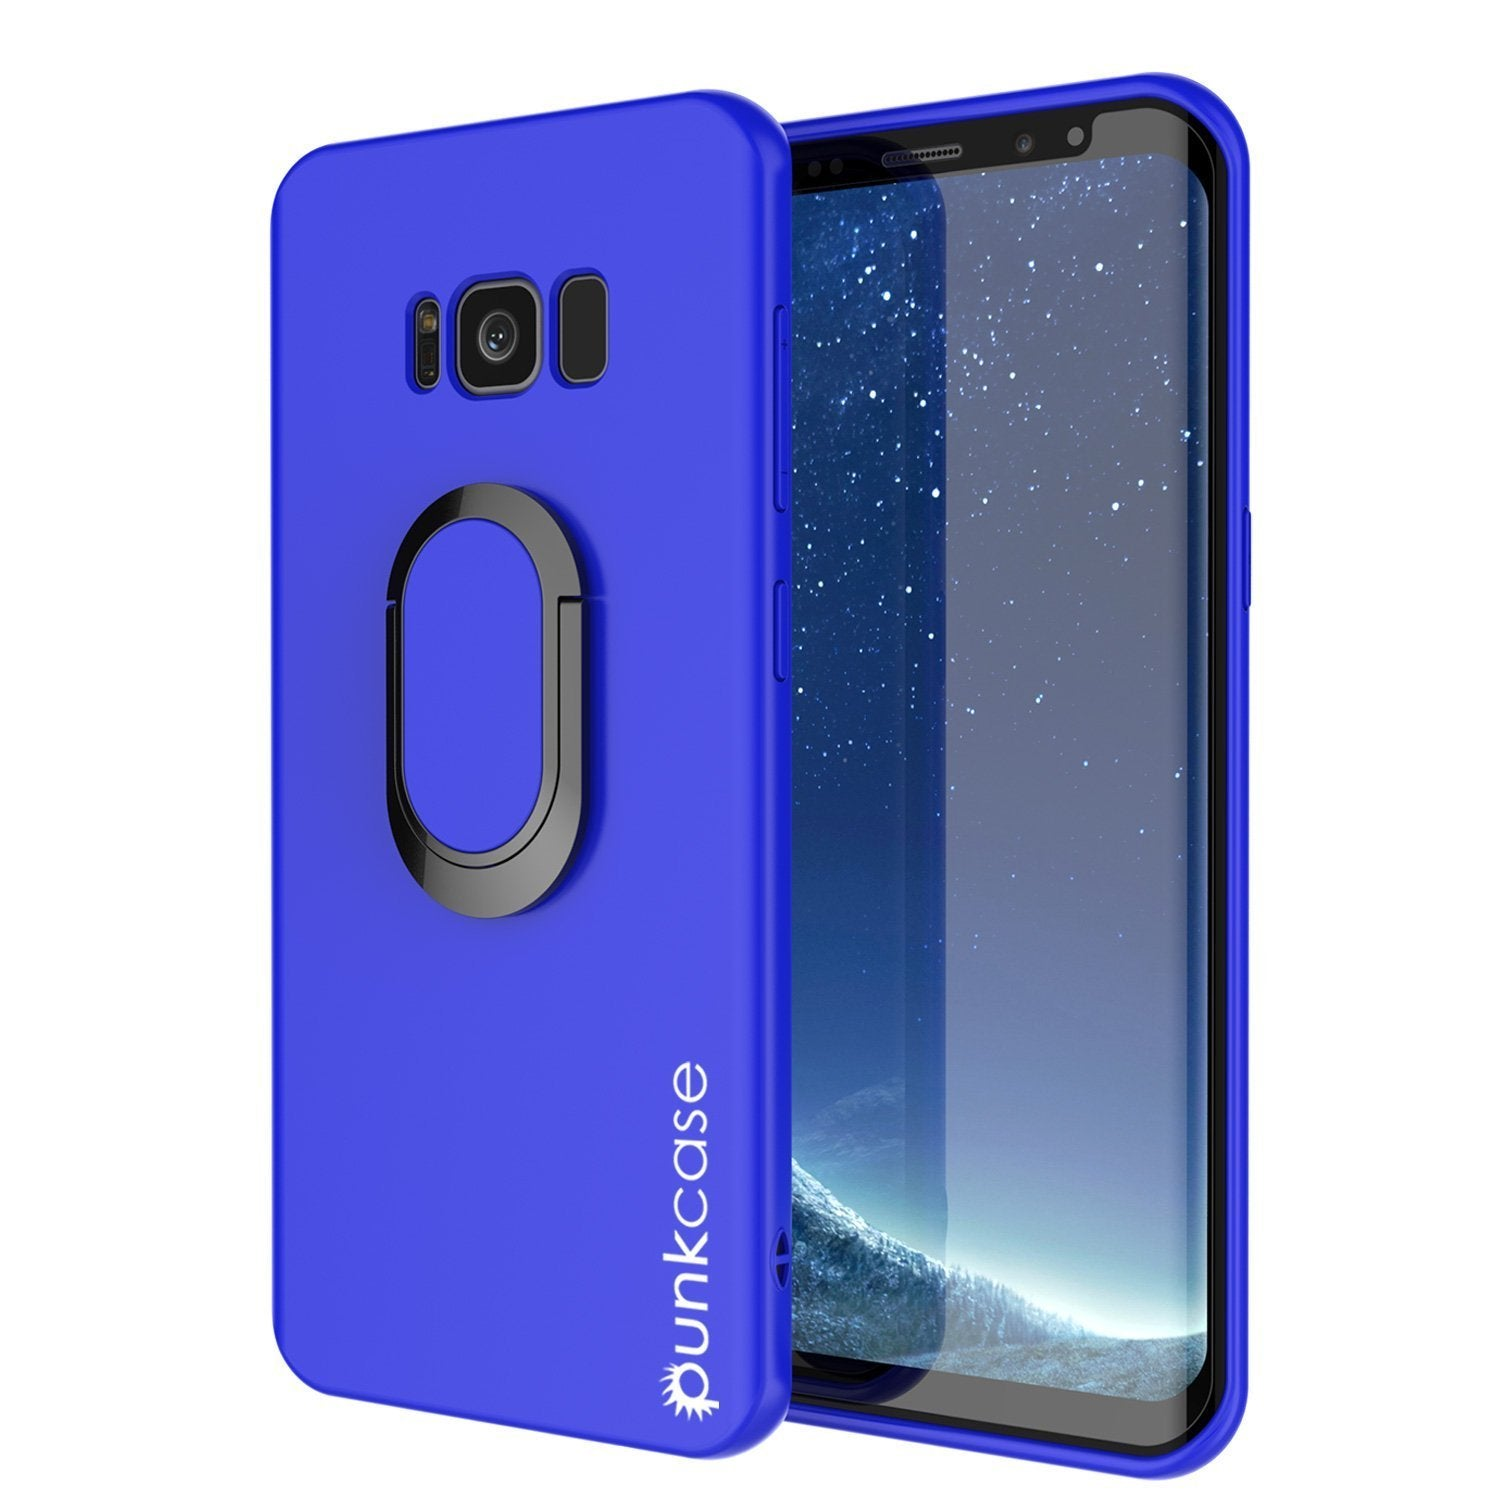 Galaxy S8 Case, Punkcase Magnetix Protective TPU Cover Blue